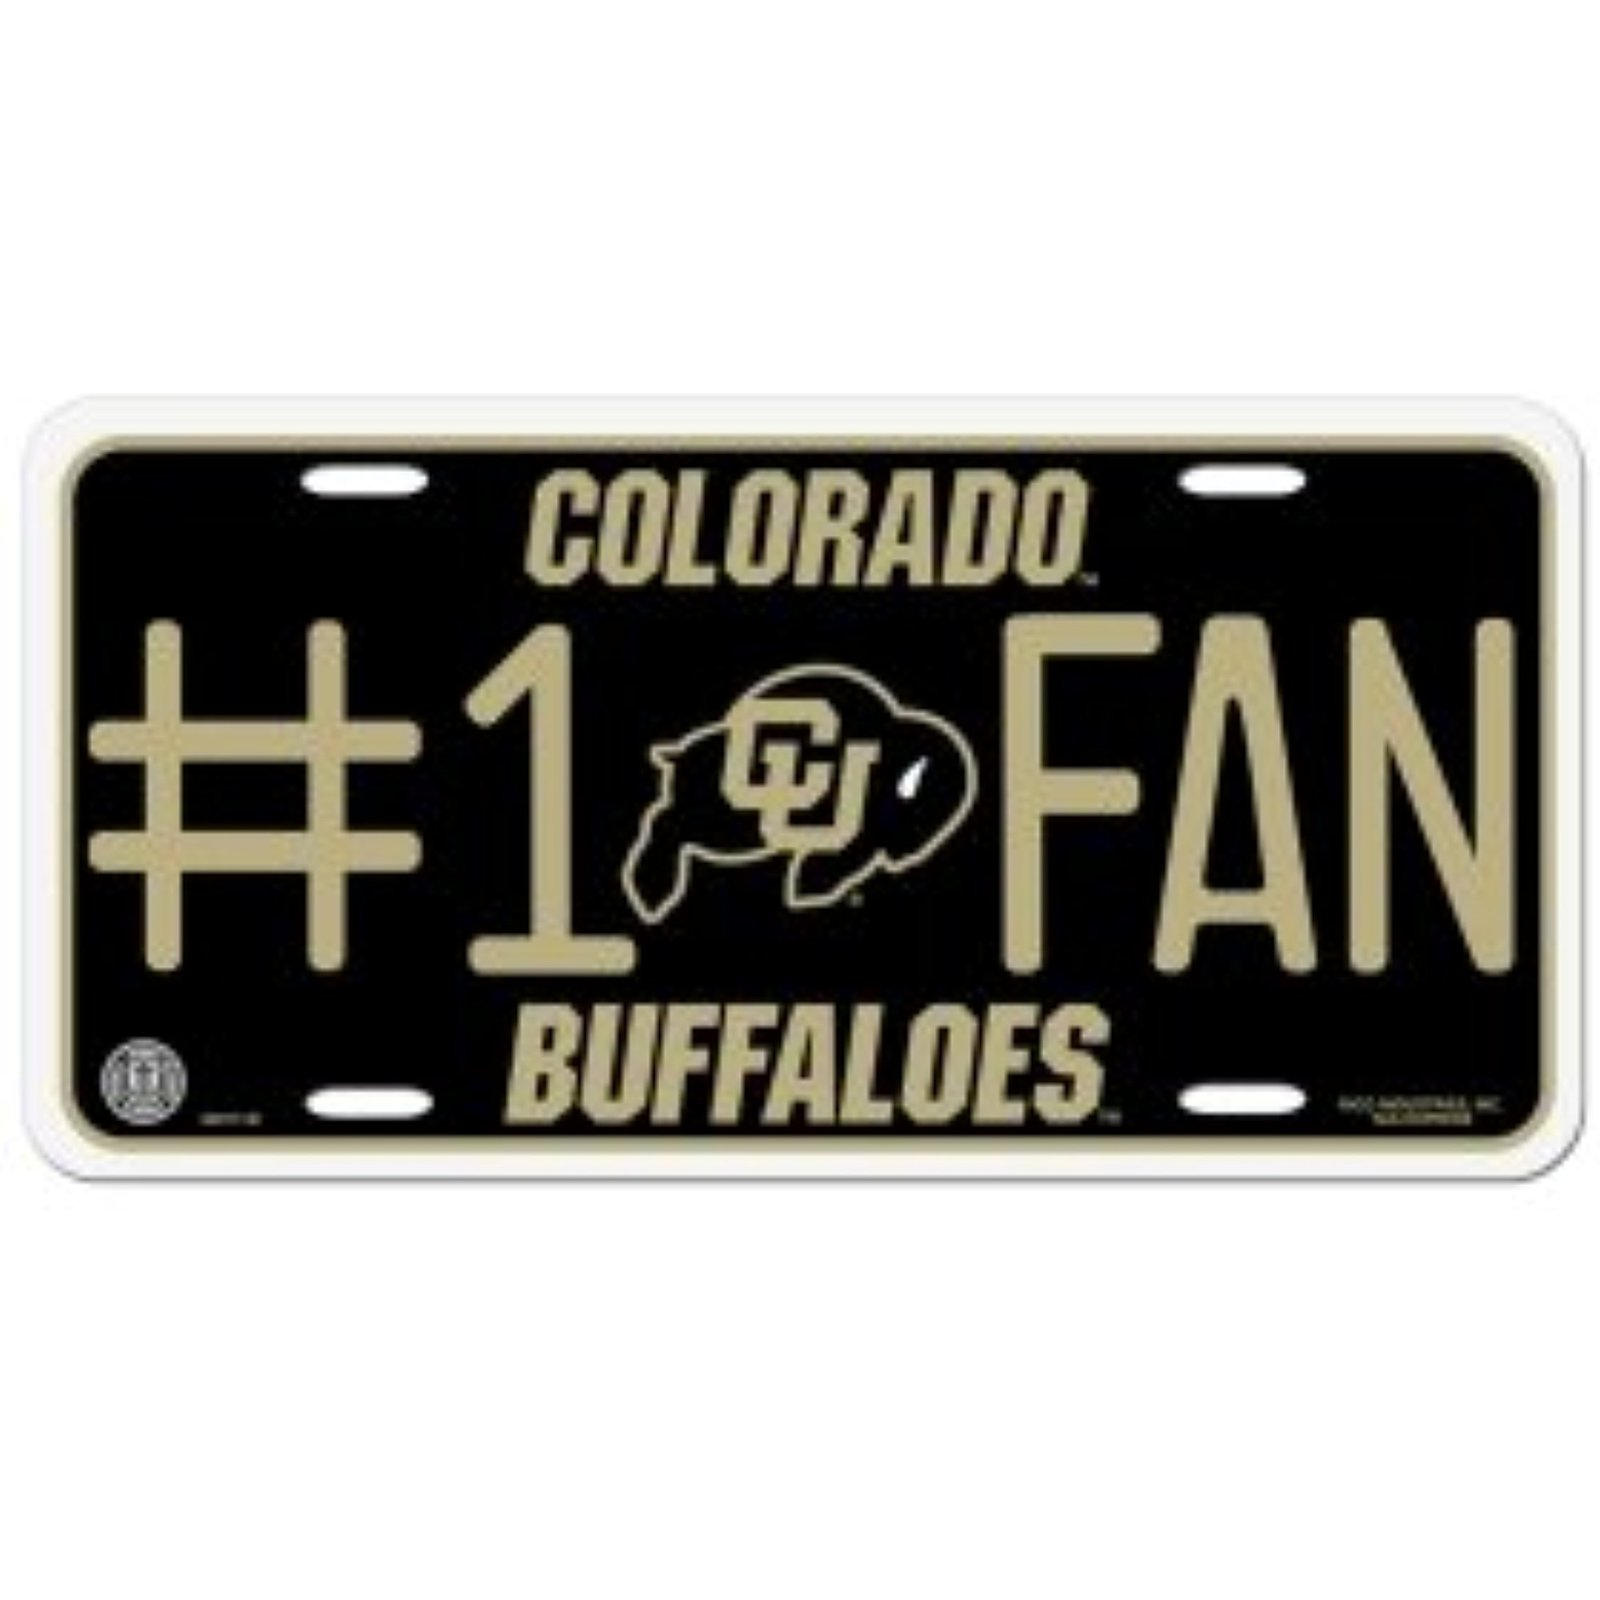 NCAA Colorado Buffaloes #1 Fan Metal Tag License Plate image 1